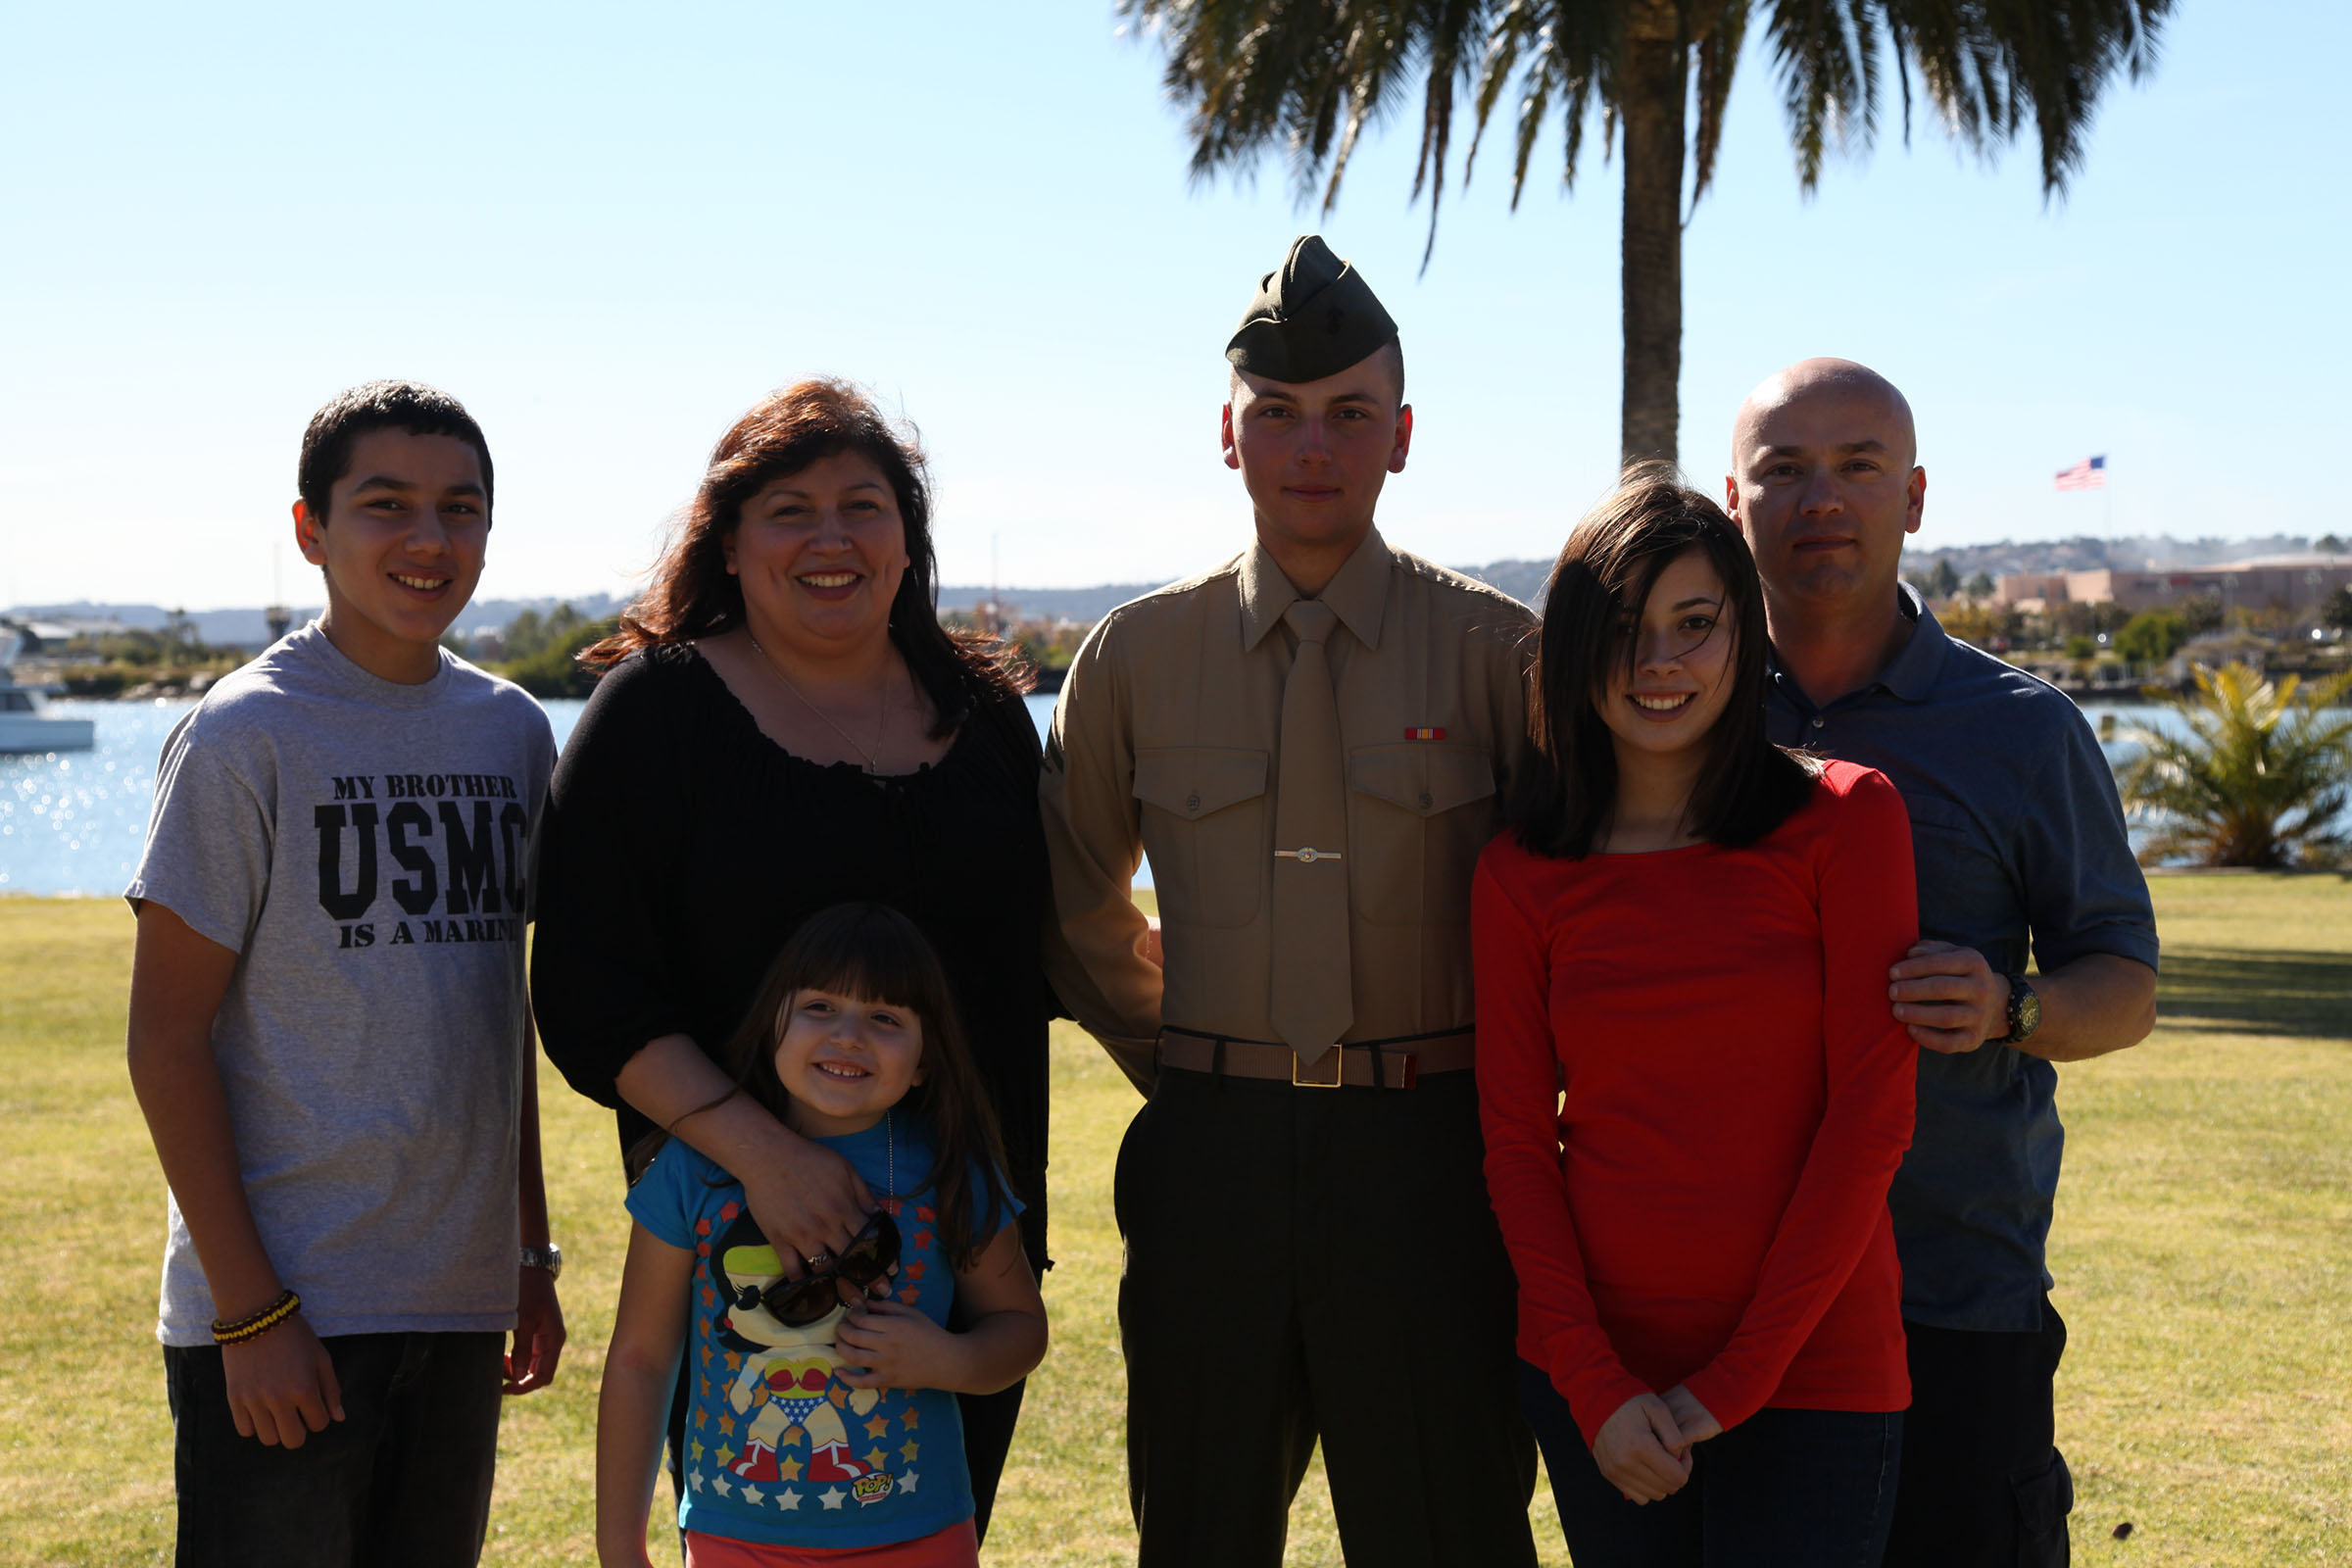 mcrc photos lance cpl adam cardenas company honorman mike company poses his family